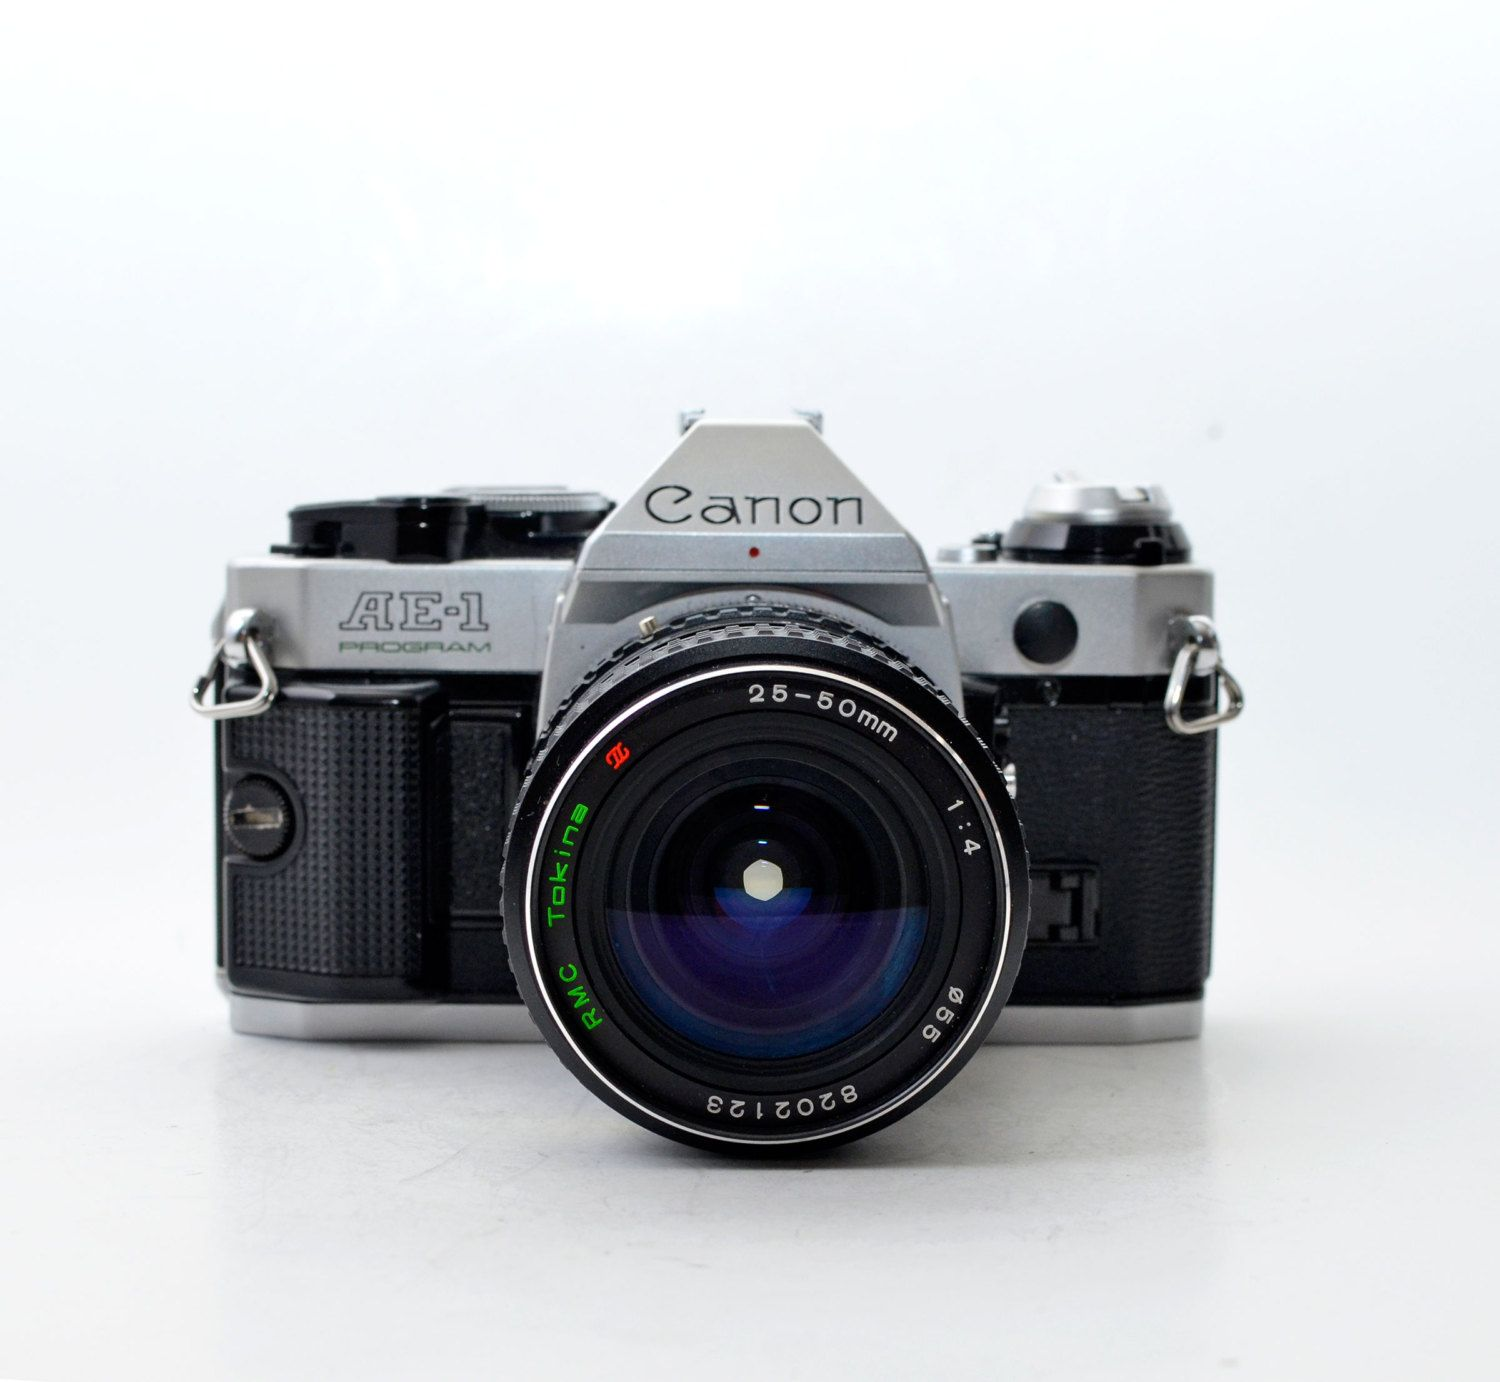 Canon AE-1 Program 35mm Film SLR Camera with Tokina RMC 25-50mm f4.0 Lens by vtgwoo on Etsy